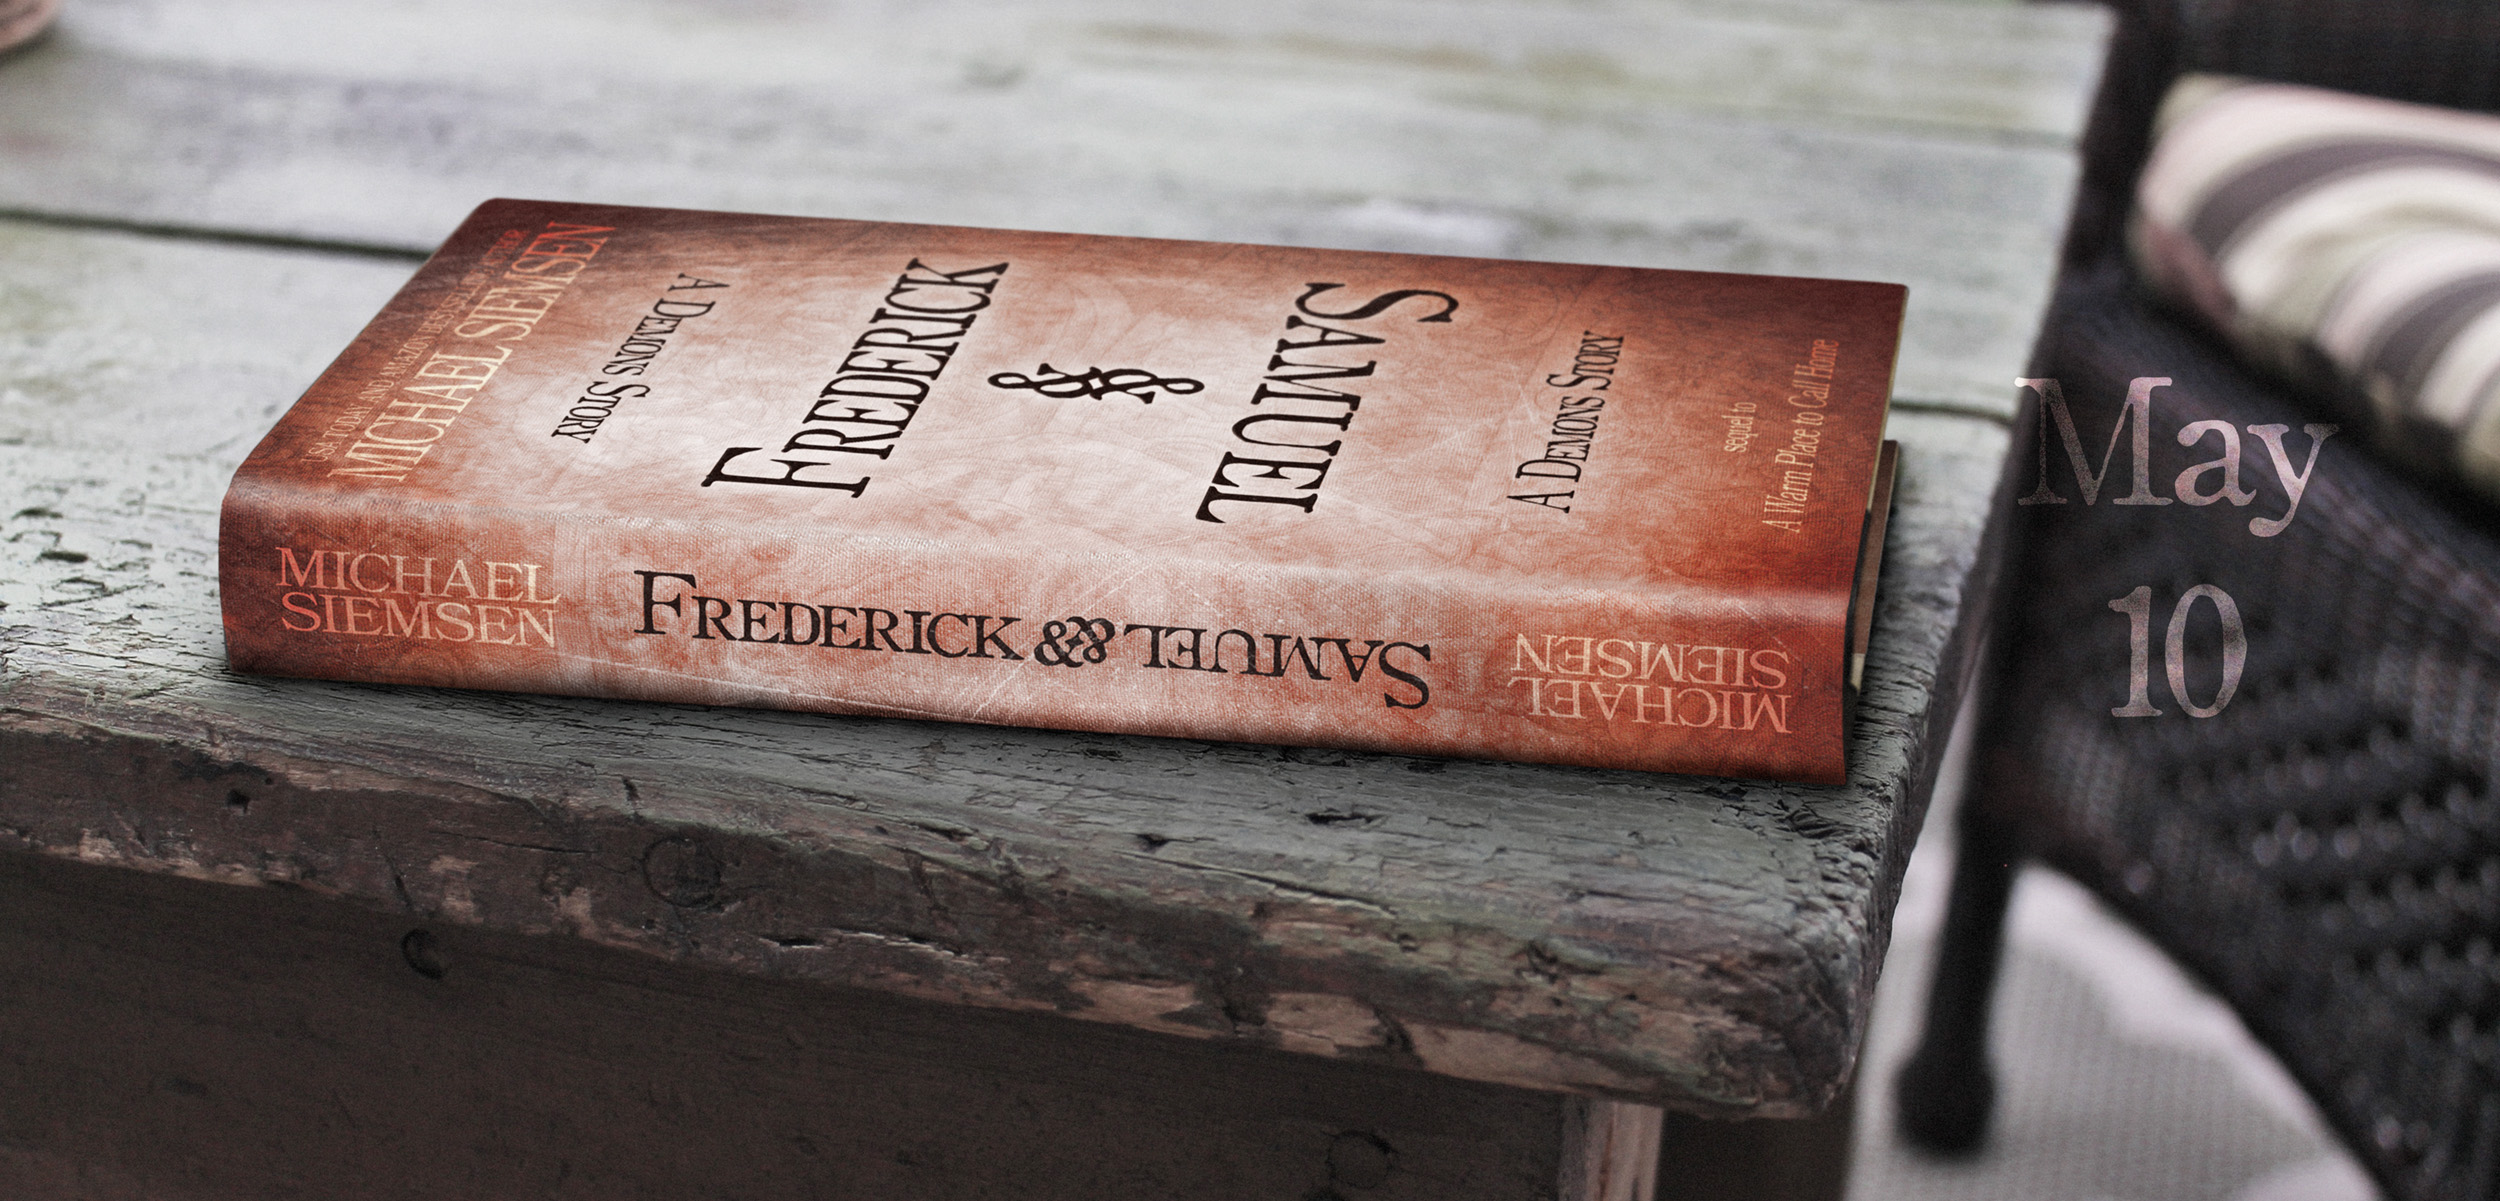 Frederick & Samuel (A Demons Story) Hardcover Novel